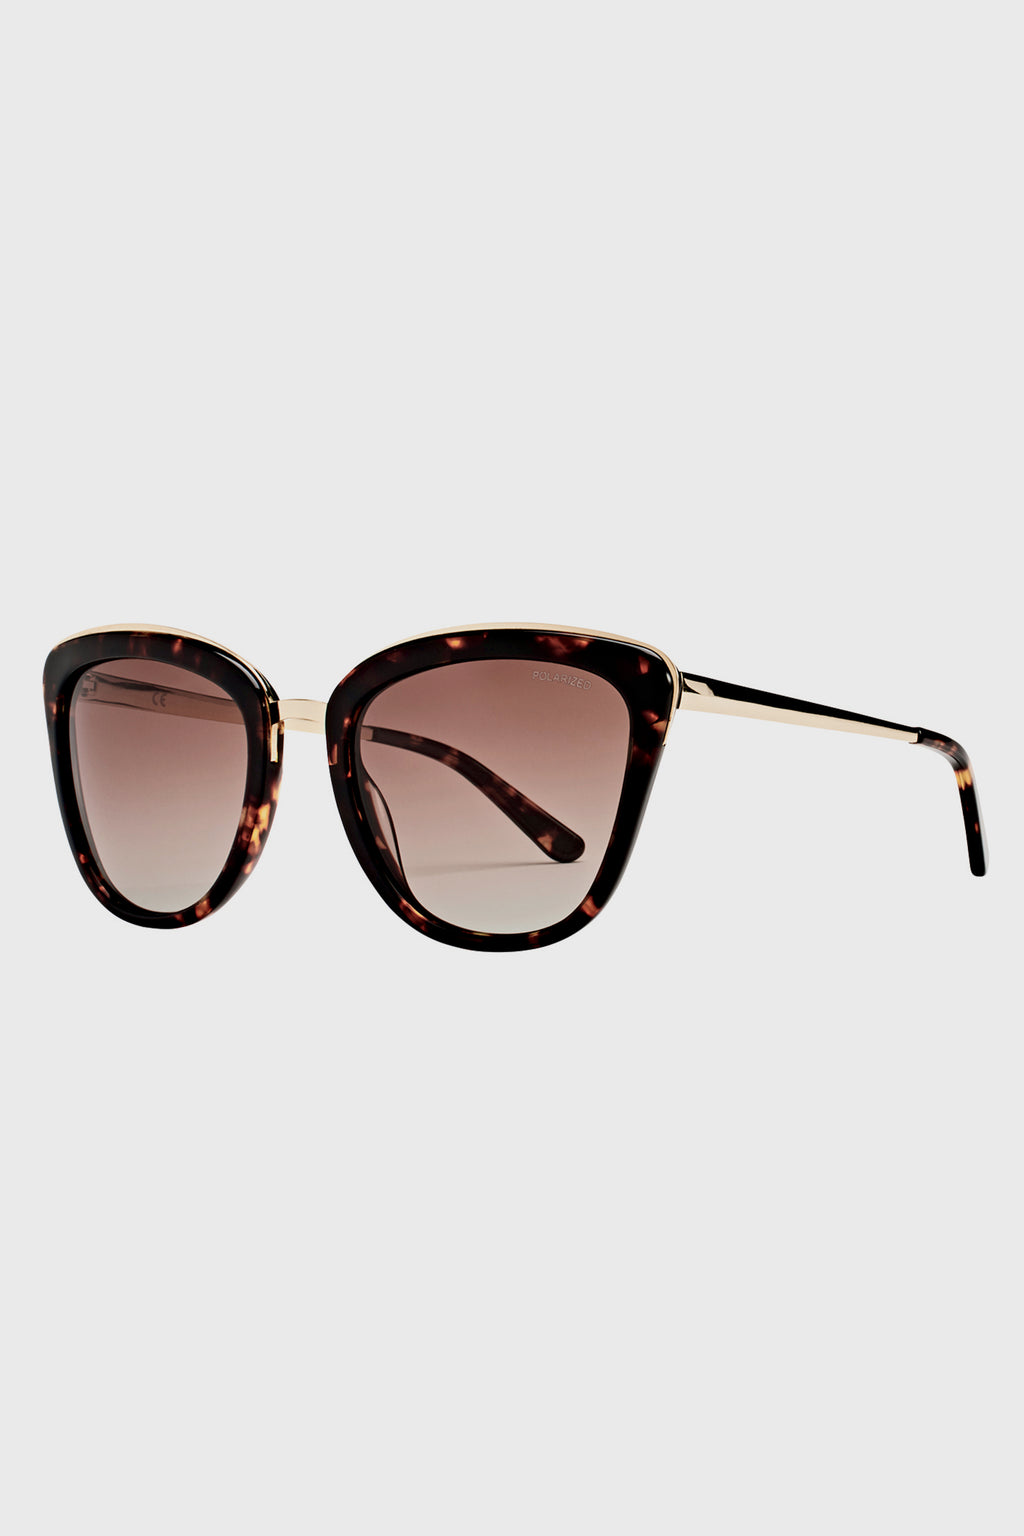 Women's Cat Eye with Exposed Frame Sunglasses(BSG1066)-SUNGLASSES-BaySky